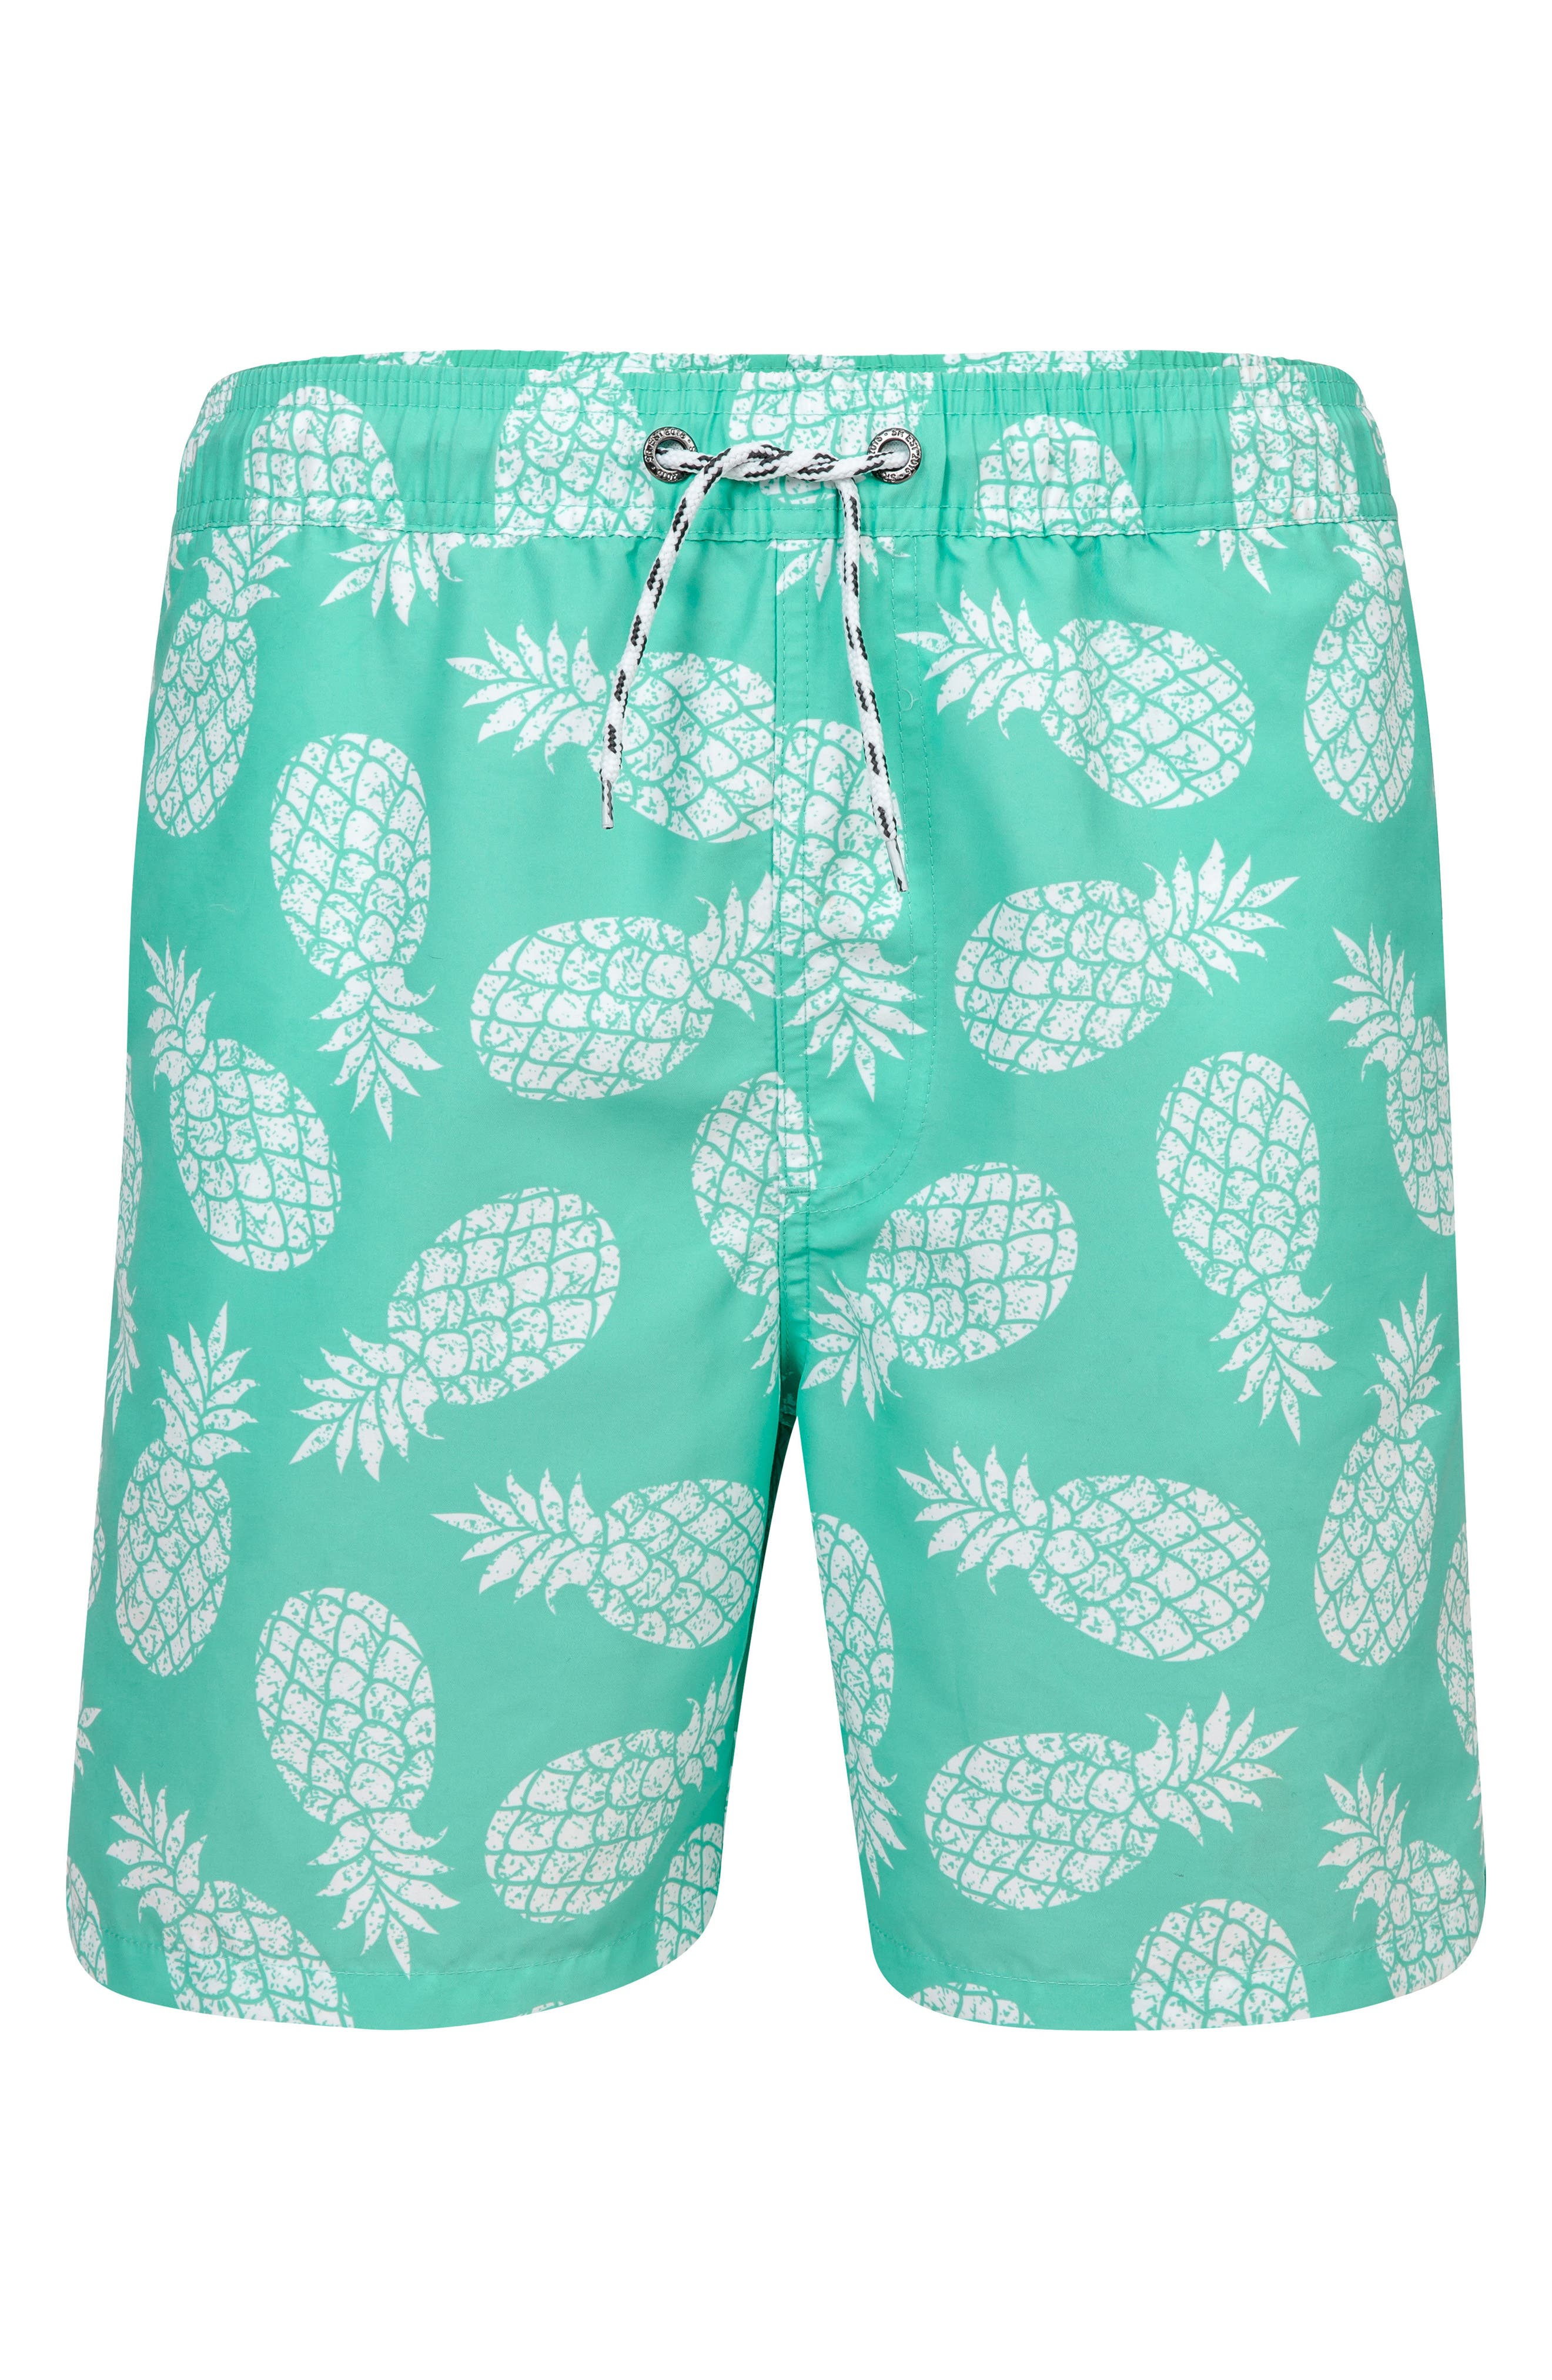 Pineapples Board Shorts,                         Main,                         color, Mint/ White